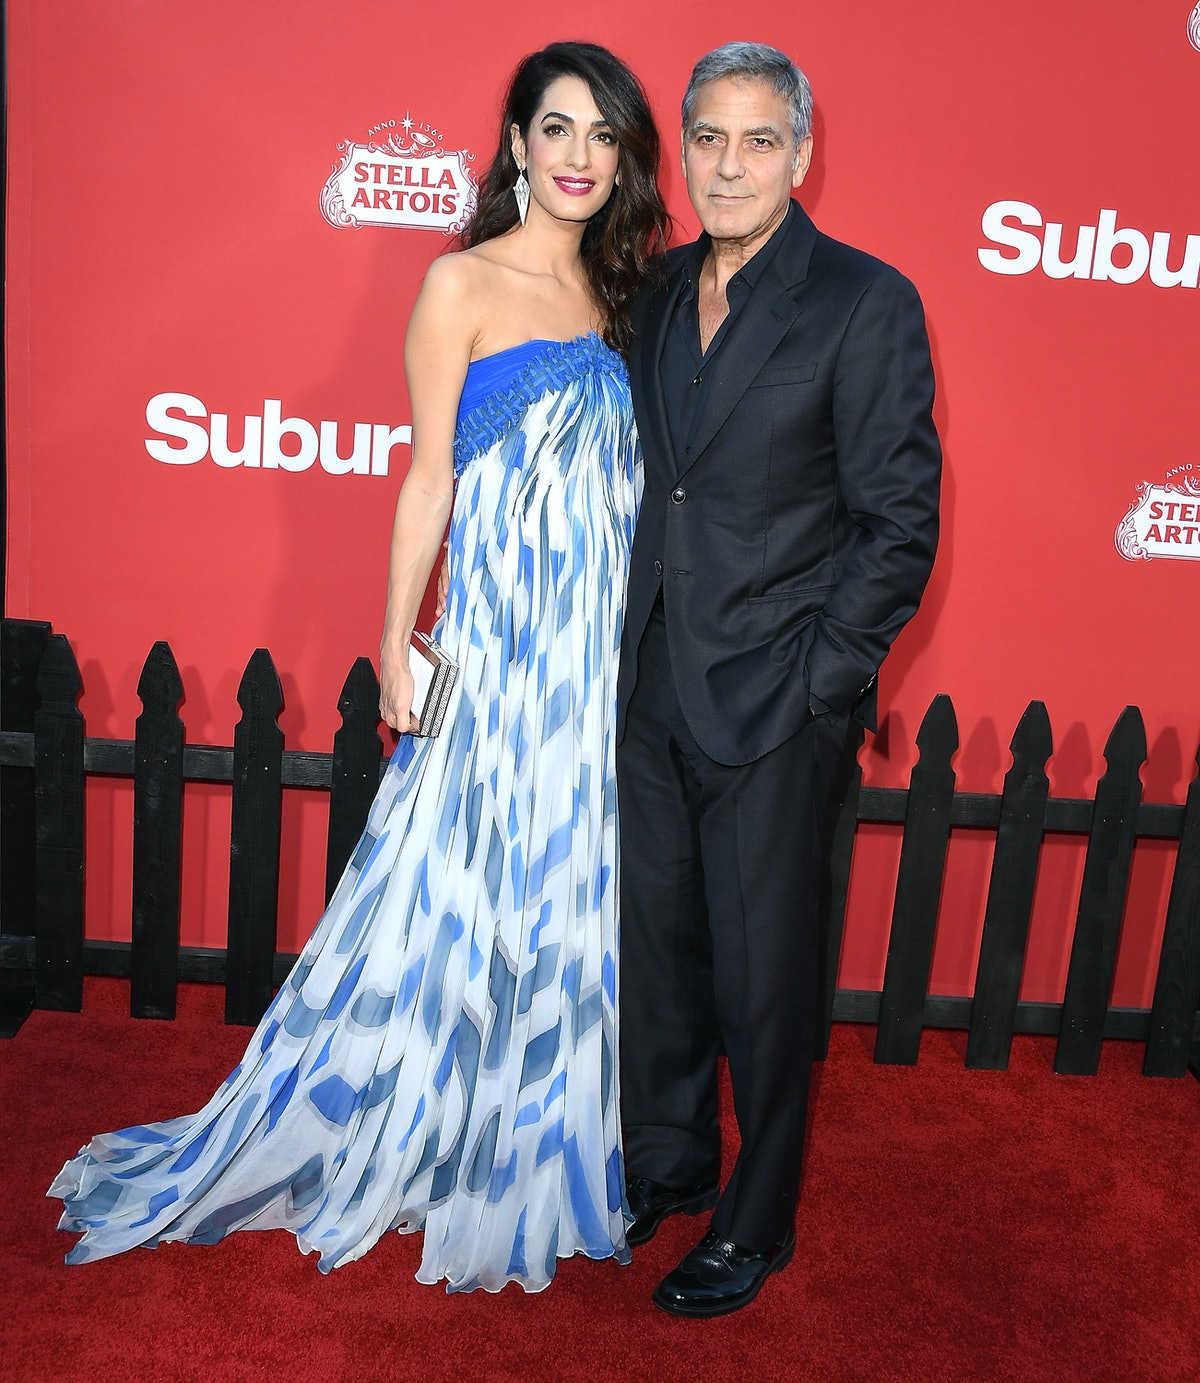 Amal and George on a red carpet